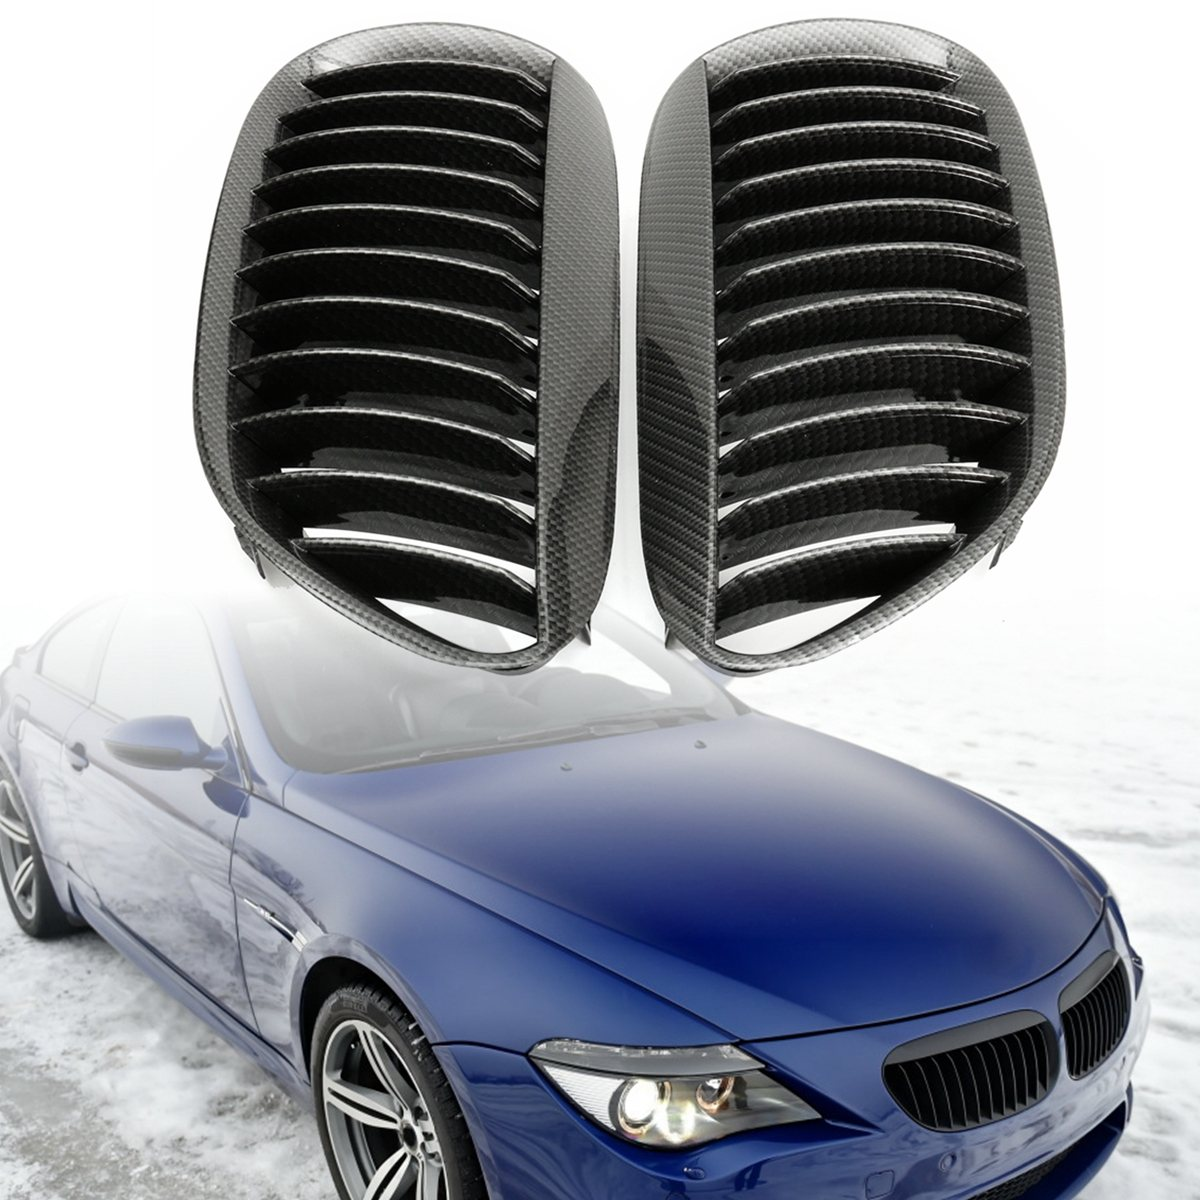 все цены на Pair Carbon Grain Grilles Front Right Left For BMW E63 E64 6 Series 2 Door Grille 2003 2004 2005 2006 2007 2008 2009 2010 онлайн